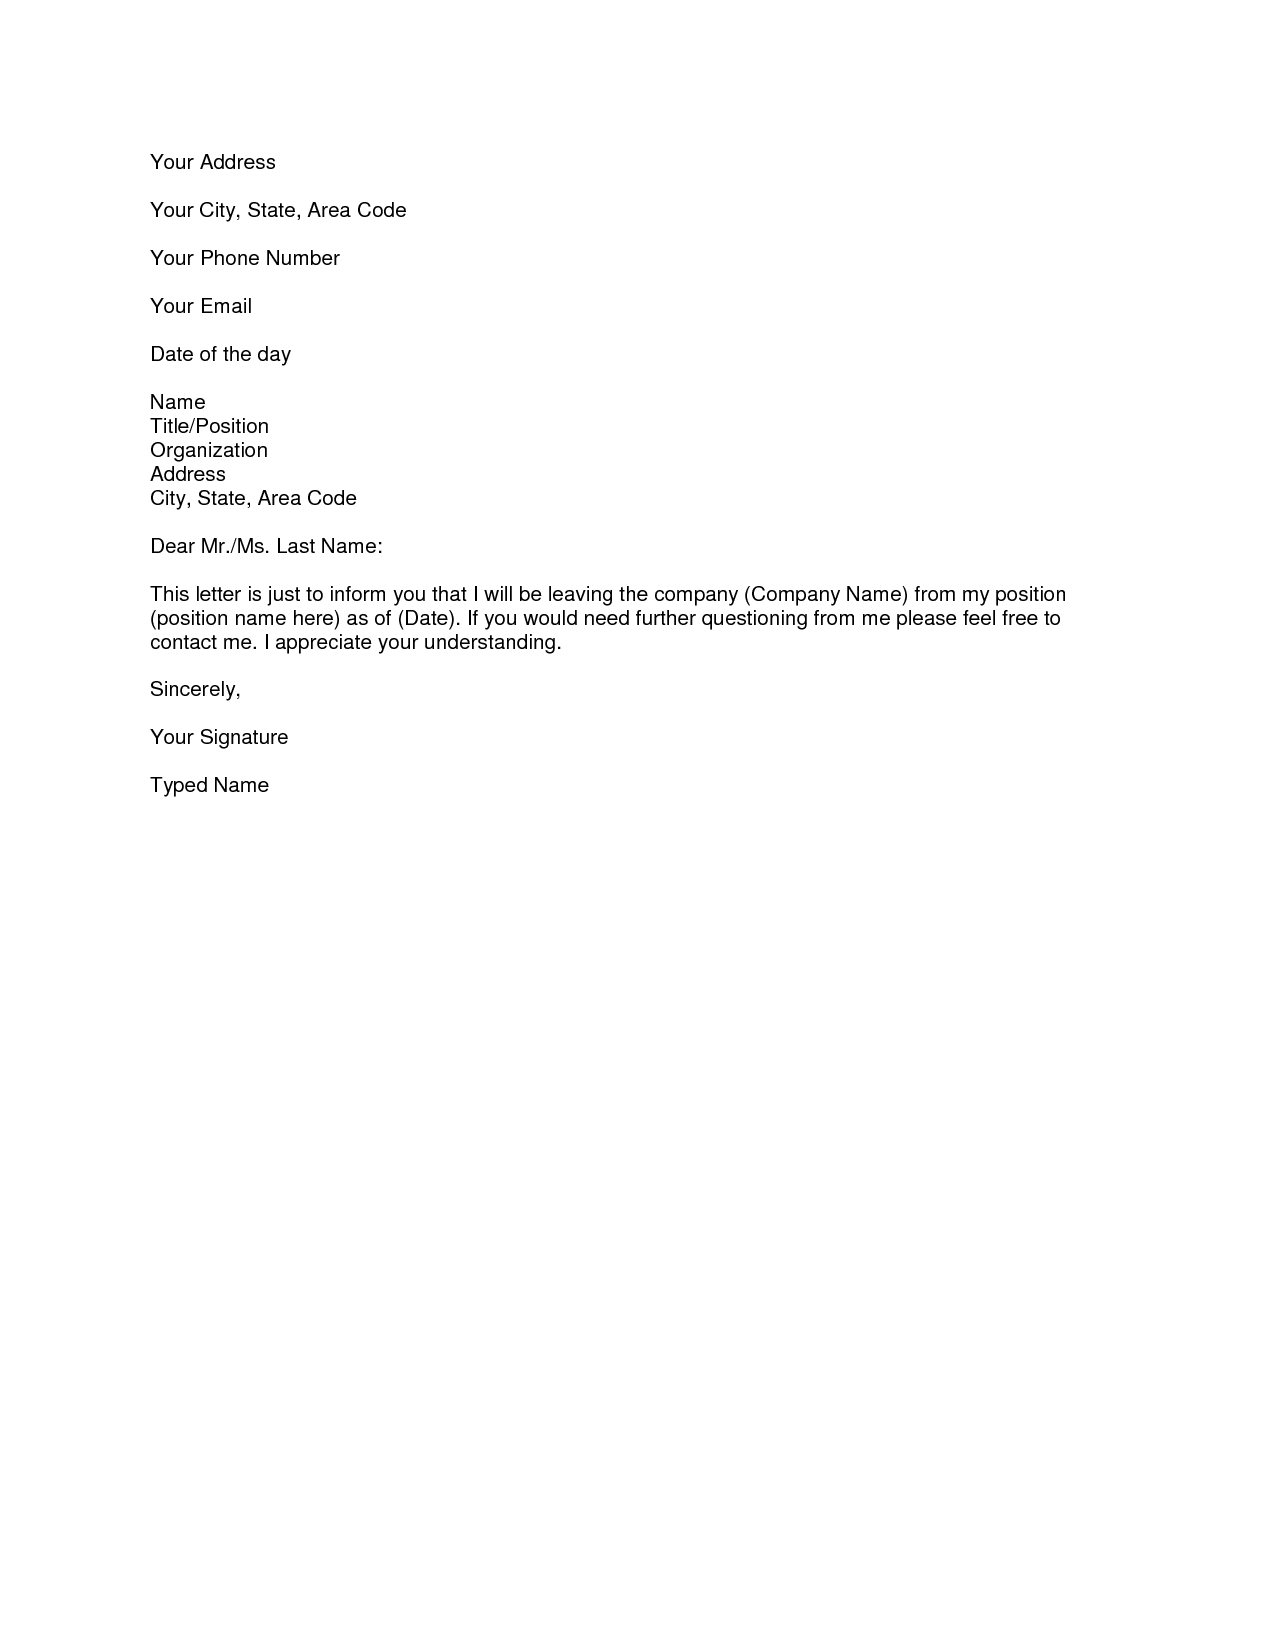 Printable Sample Letter of Resignation Form | Laywers Template Forms ...